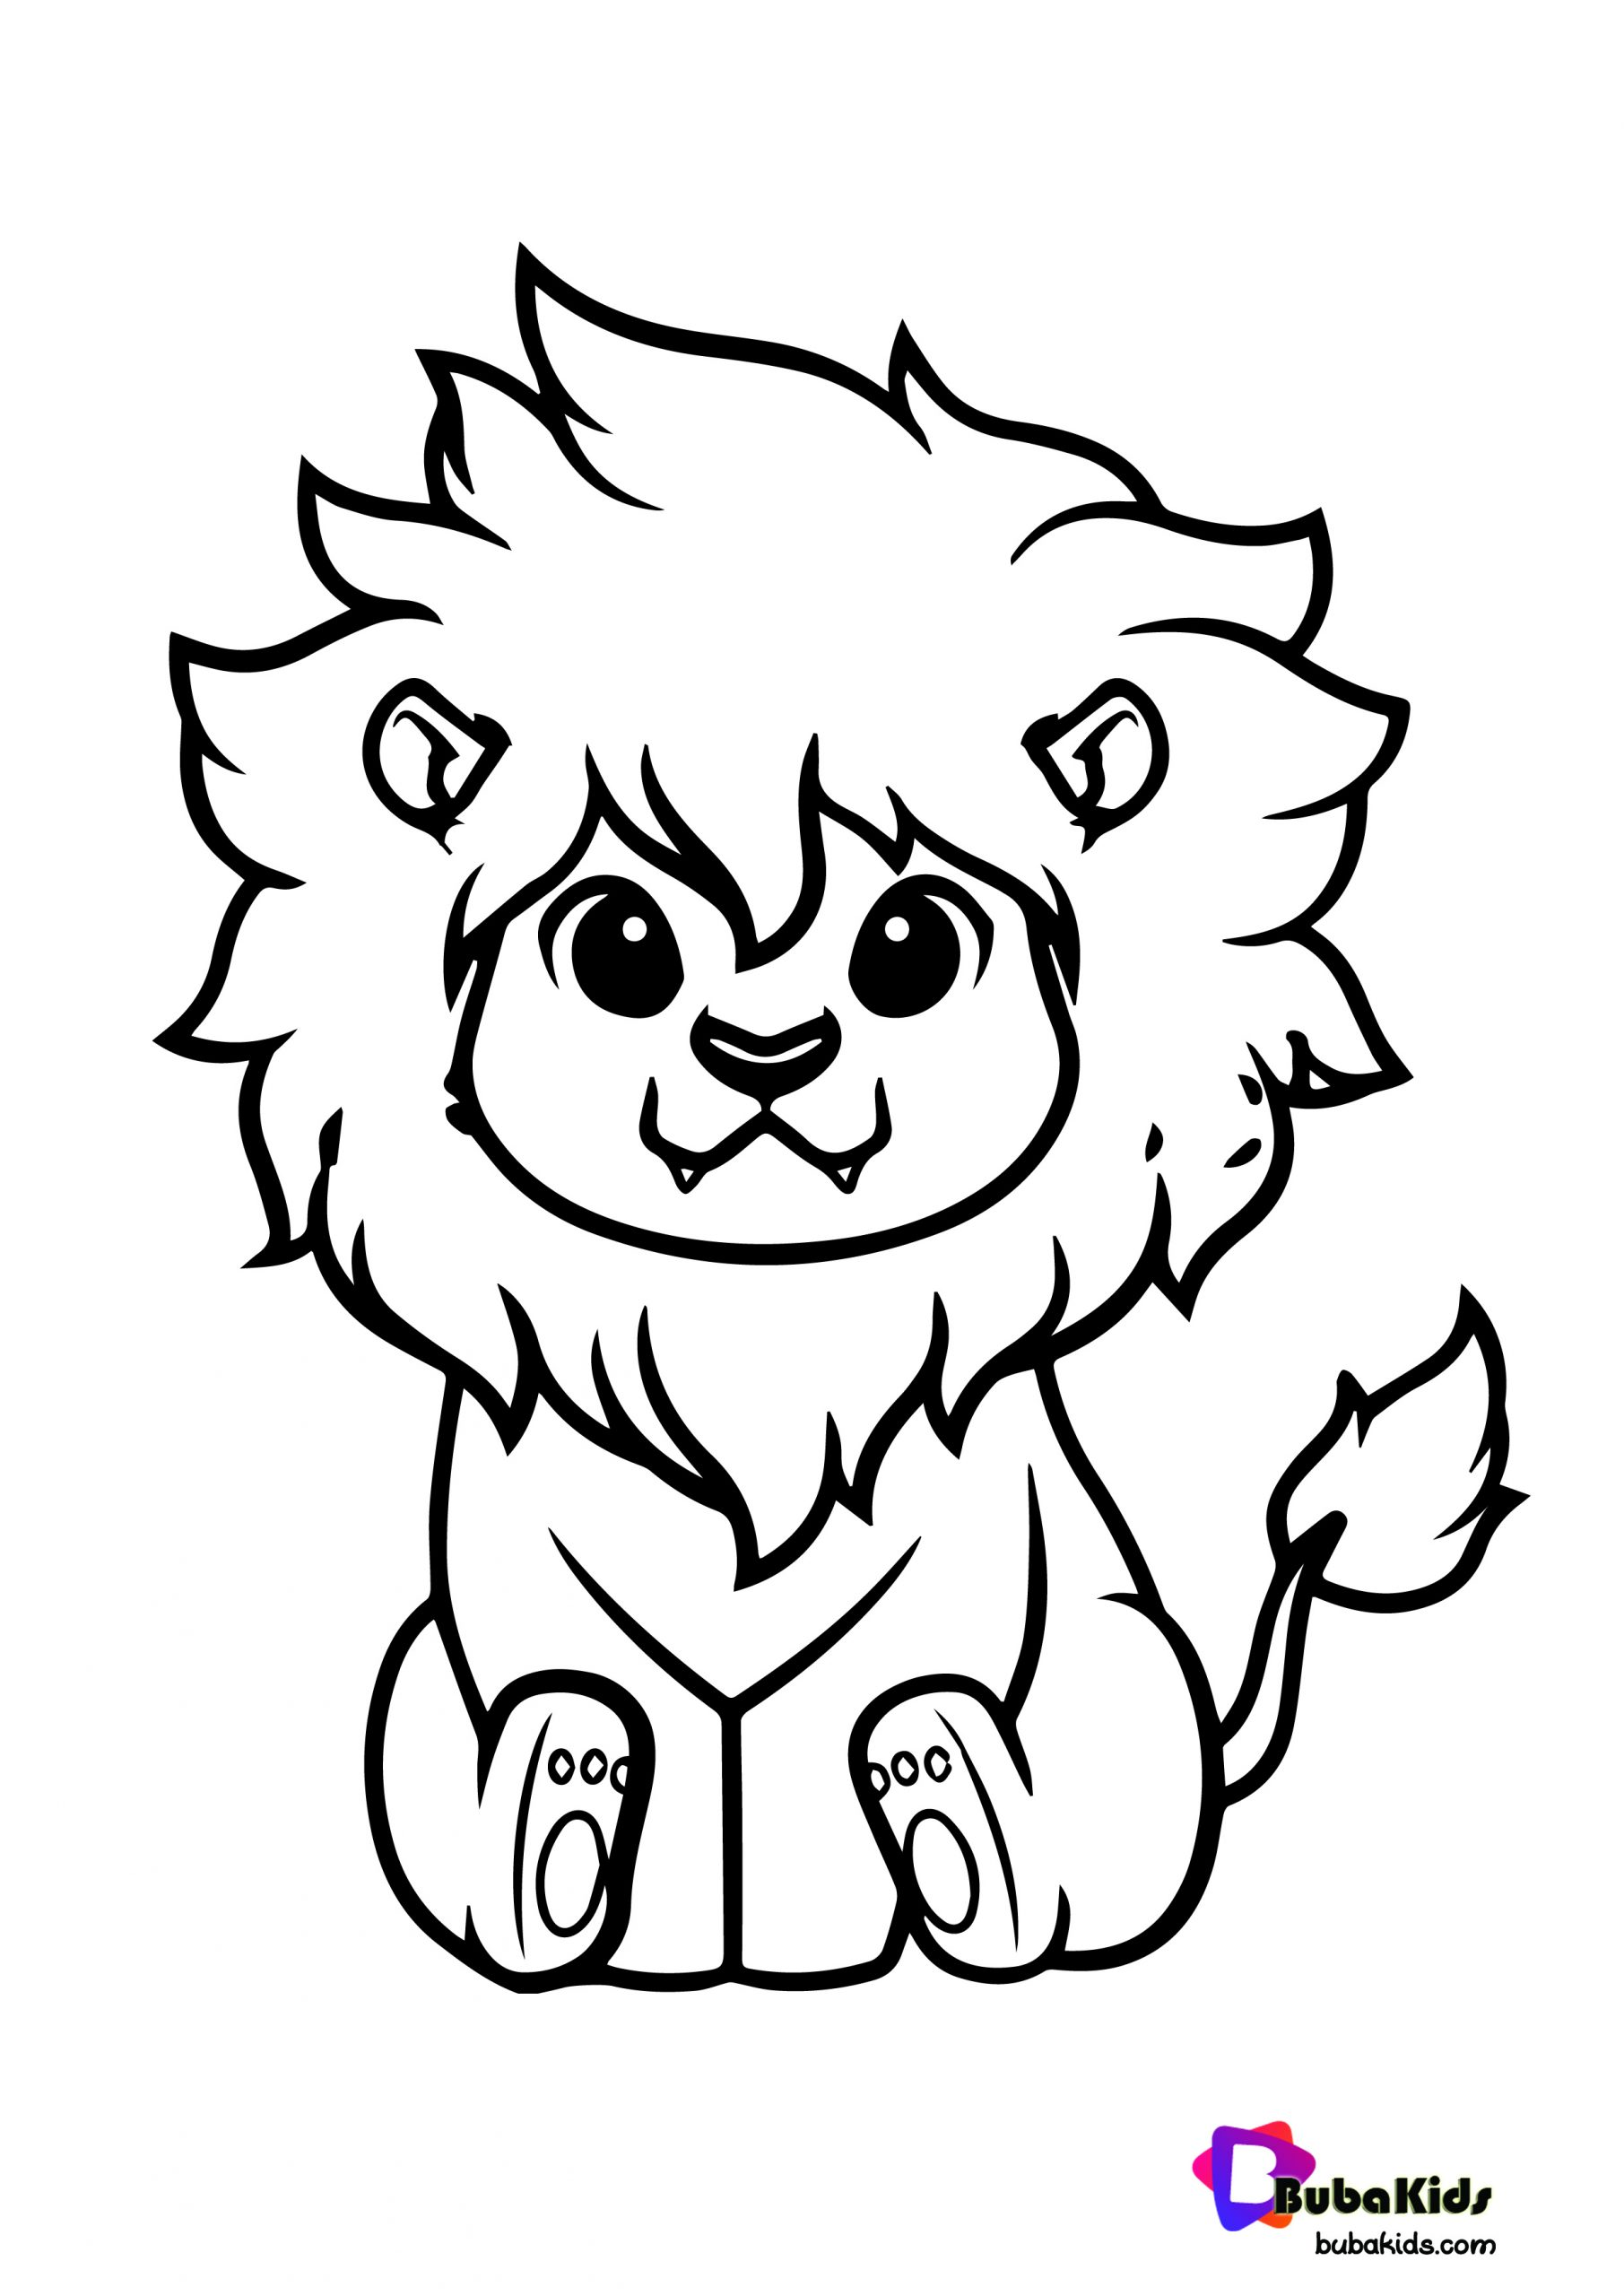 colouring images of lion cute lion king coloring page bubakidscom of colouring lion images